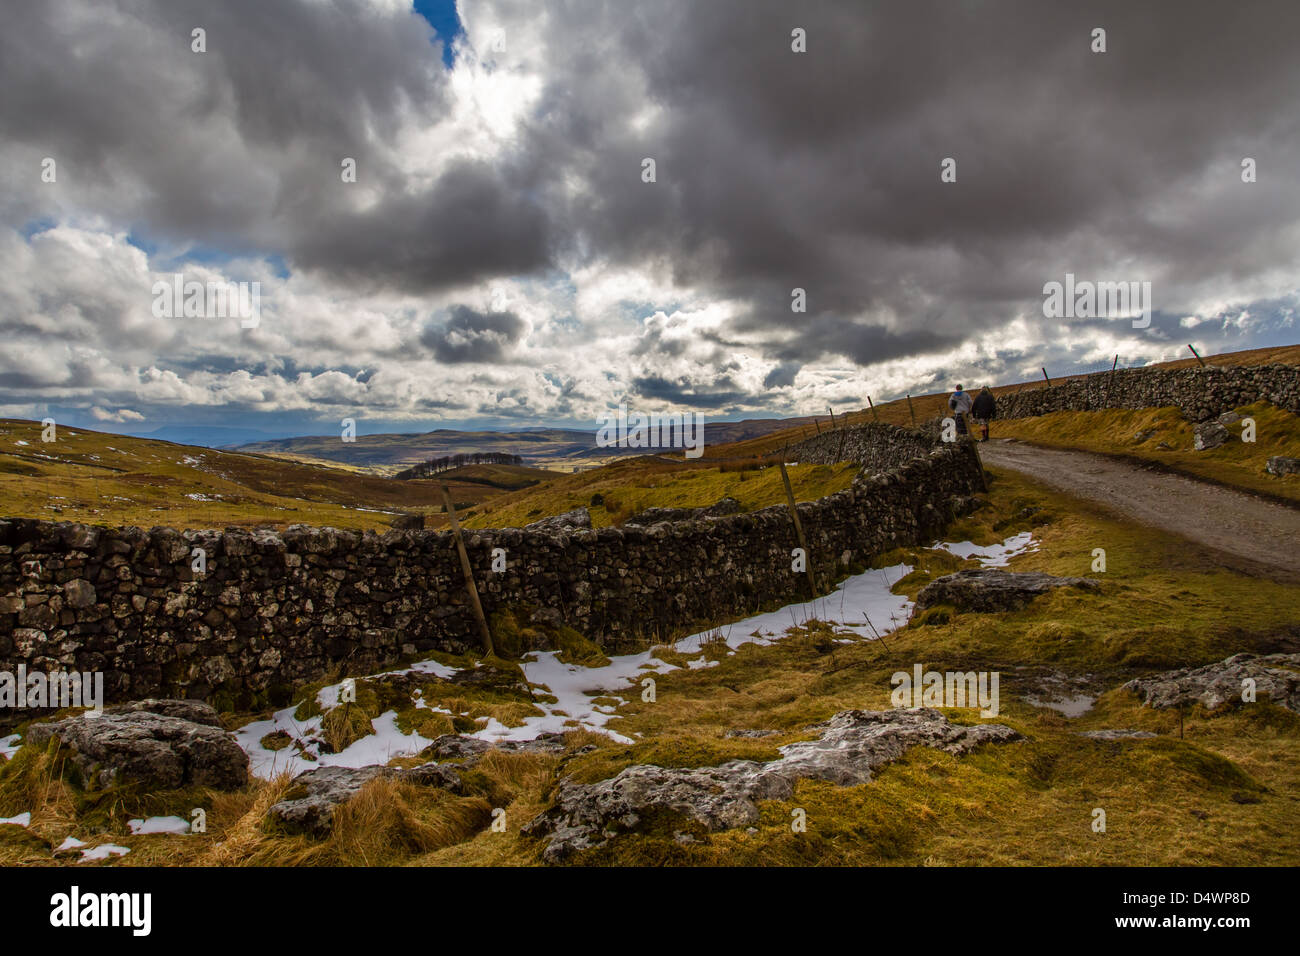 Heading down Pen-y-Ghent, one of the Yorkshire 3 Peaks, UK - Stock Image